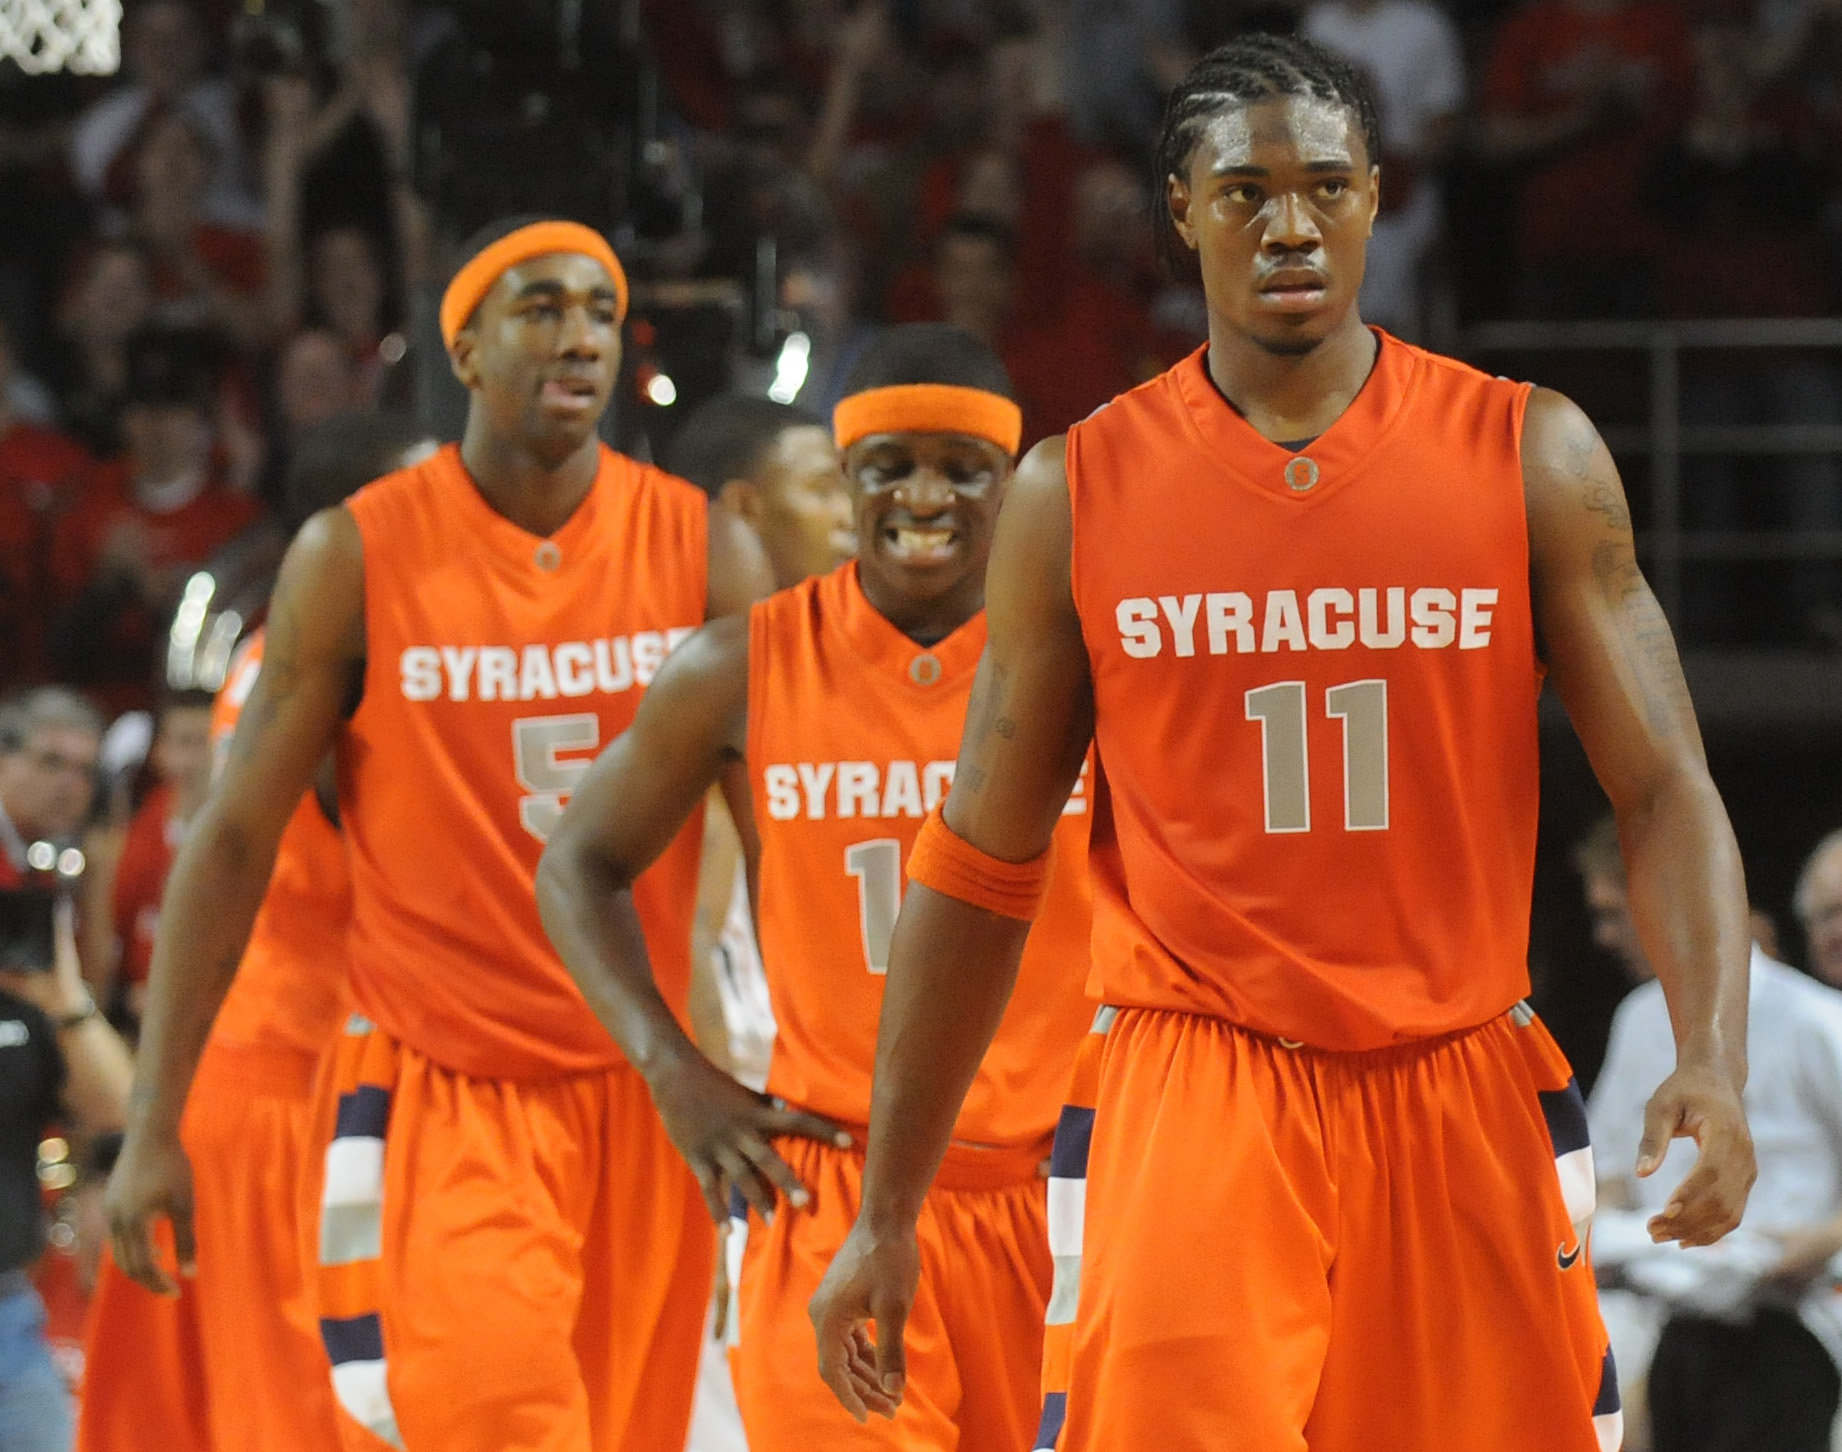 Syracuse Basketball S Roster Will Be Youngest In A Decade Next Year